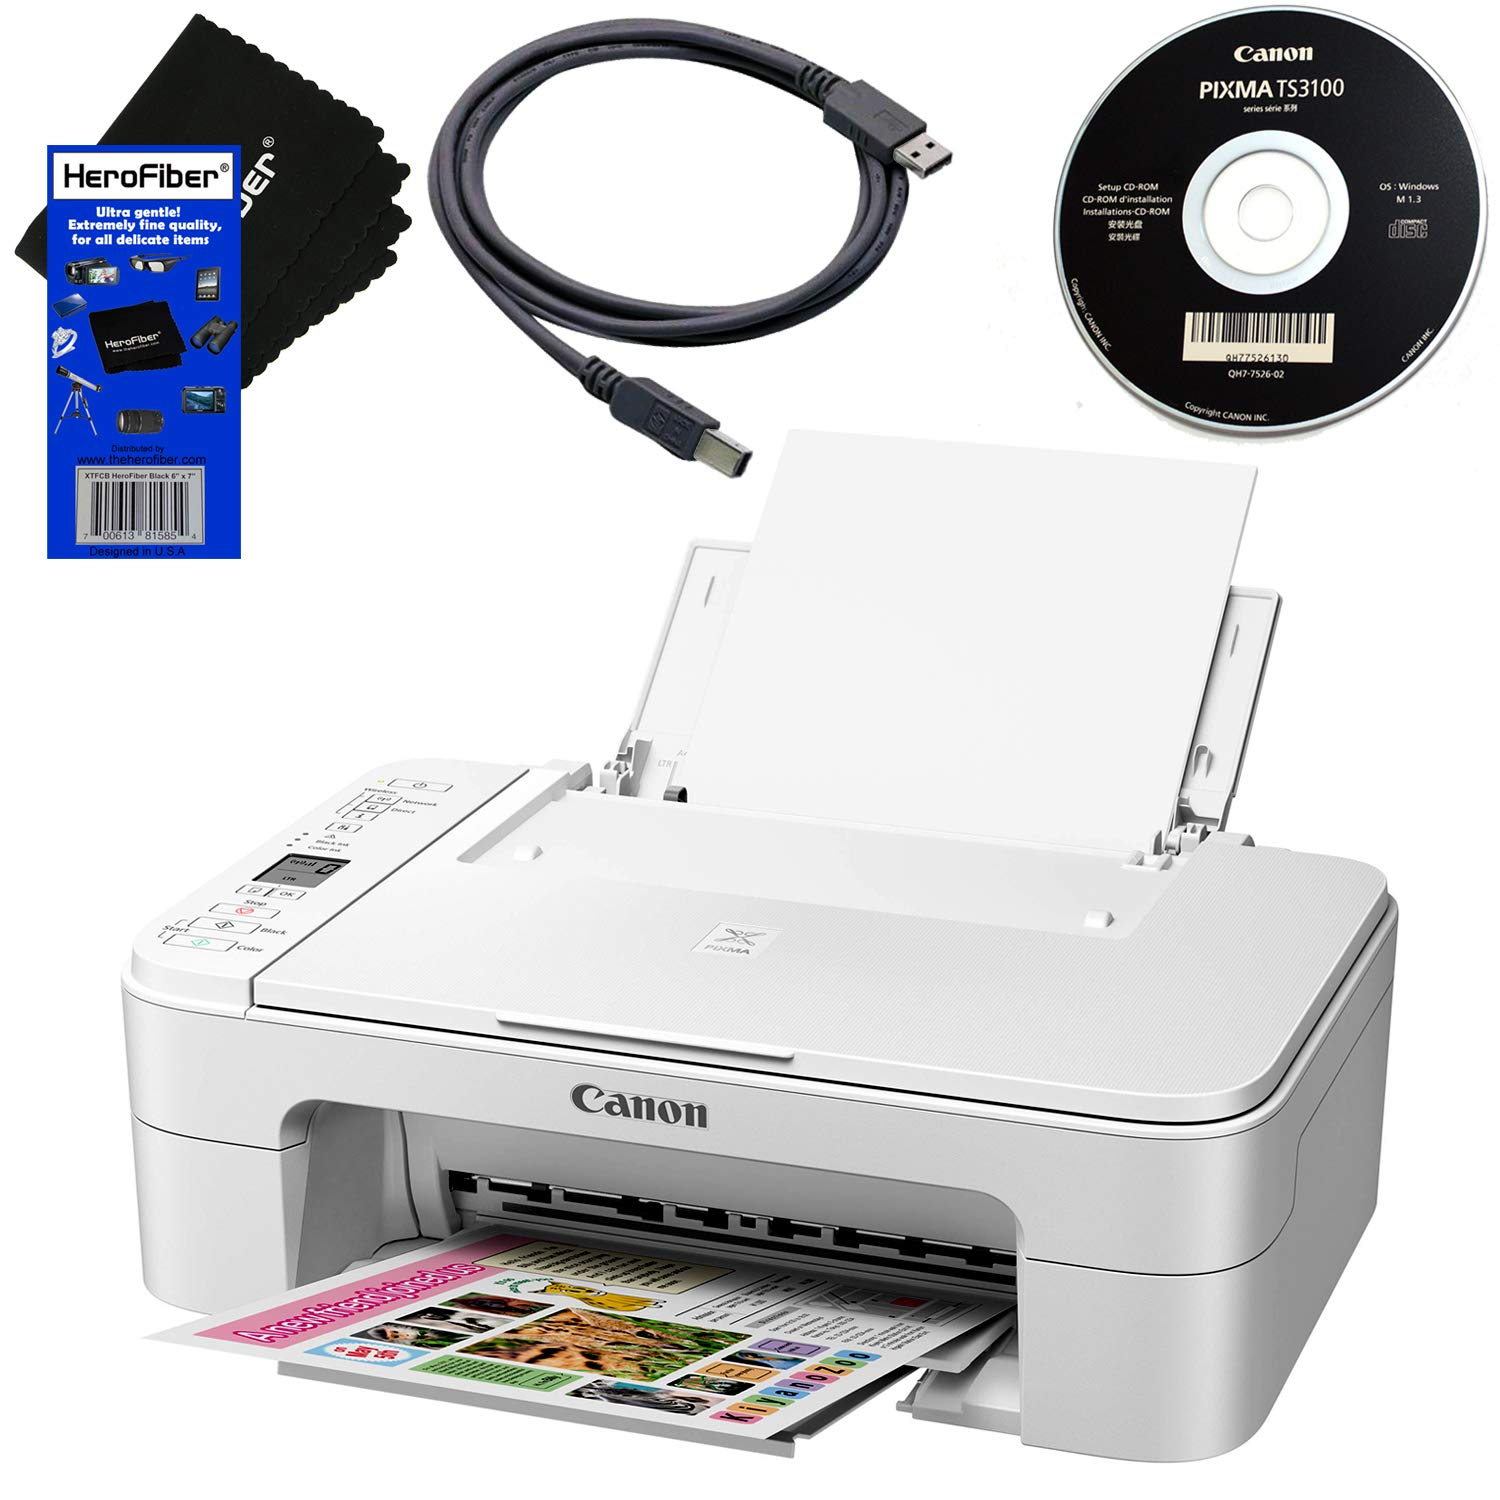 Canon PIXMA TS3120 Wireless All-in-One Compact Inkjet Printer for Home Use with Print, Scan, Copy (White) + Set of Ink Tanks + USB Printer Cable + HeroFiber Ultra Gentle Cleaning Cloth